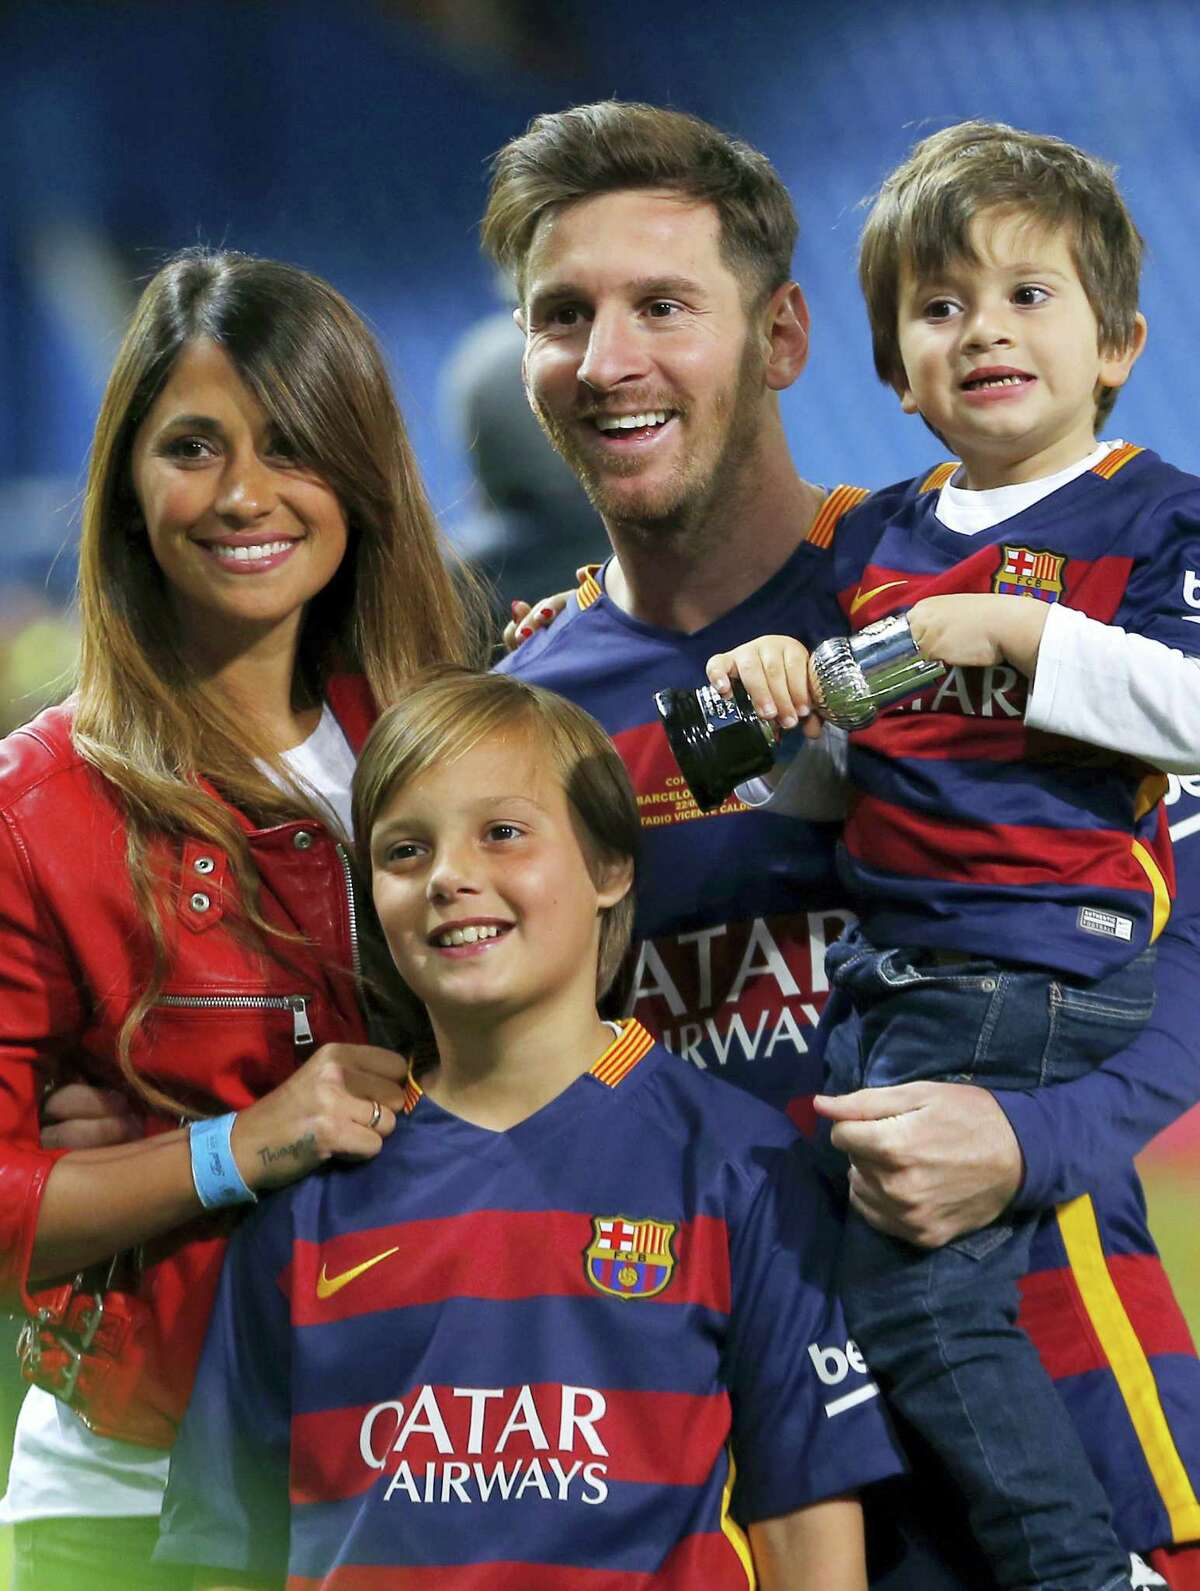 Barcelona's Lionel Messi, carrying his son, will be marrying 29-year-old Antonella Roccuzzo, his childhood friend and mother of his two children.